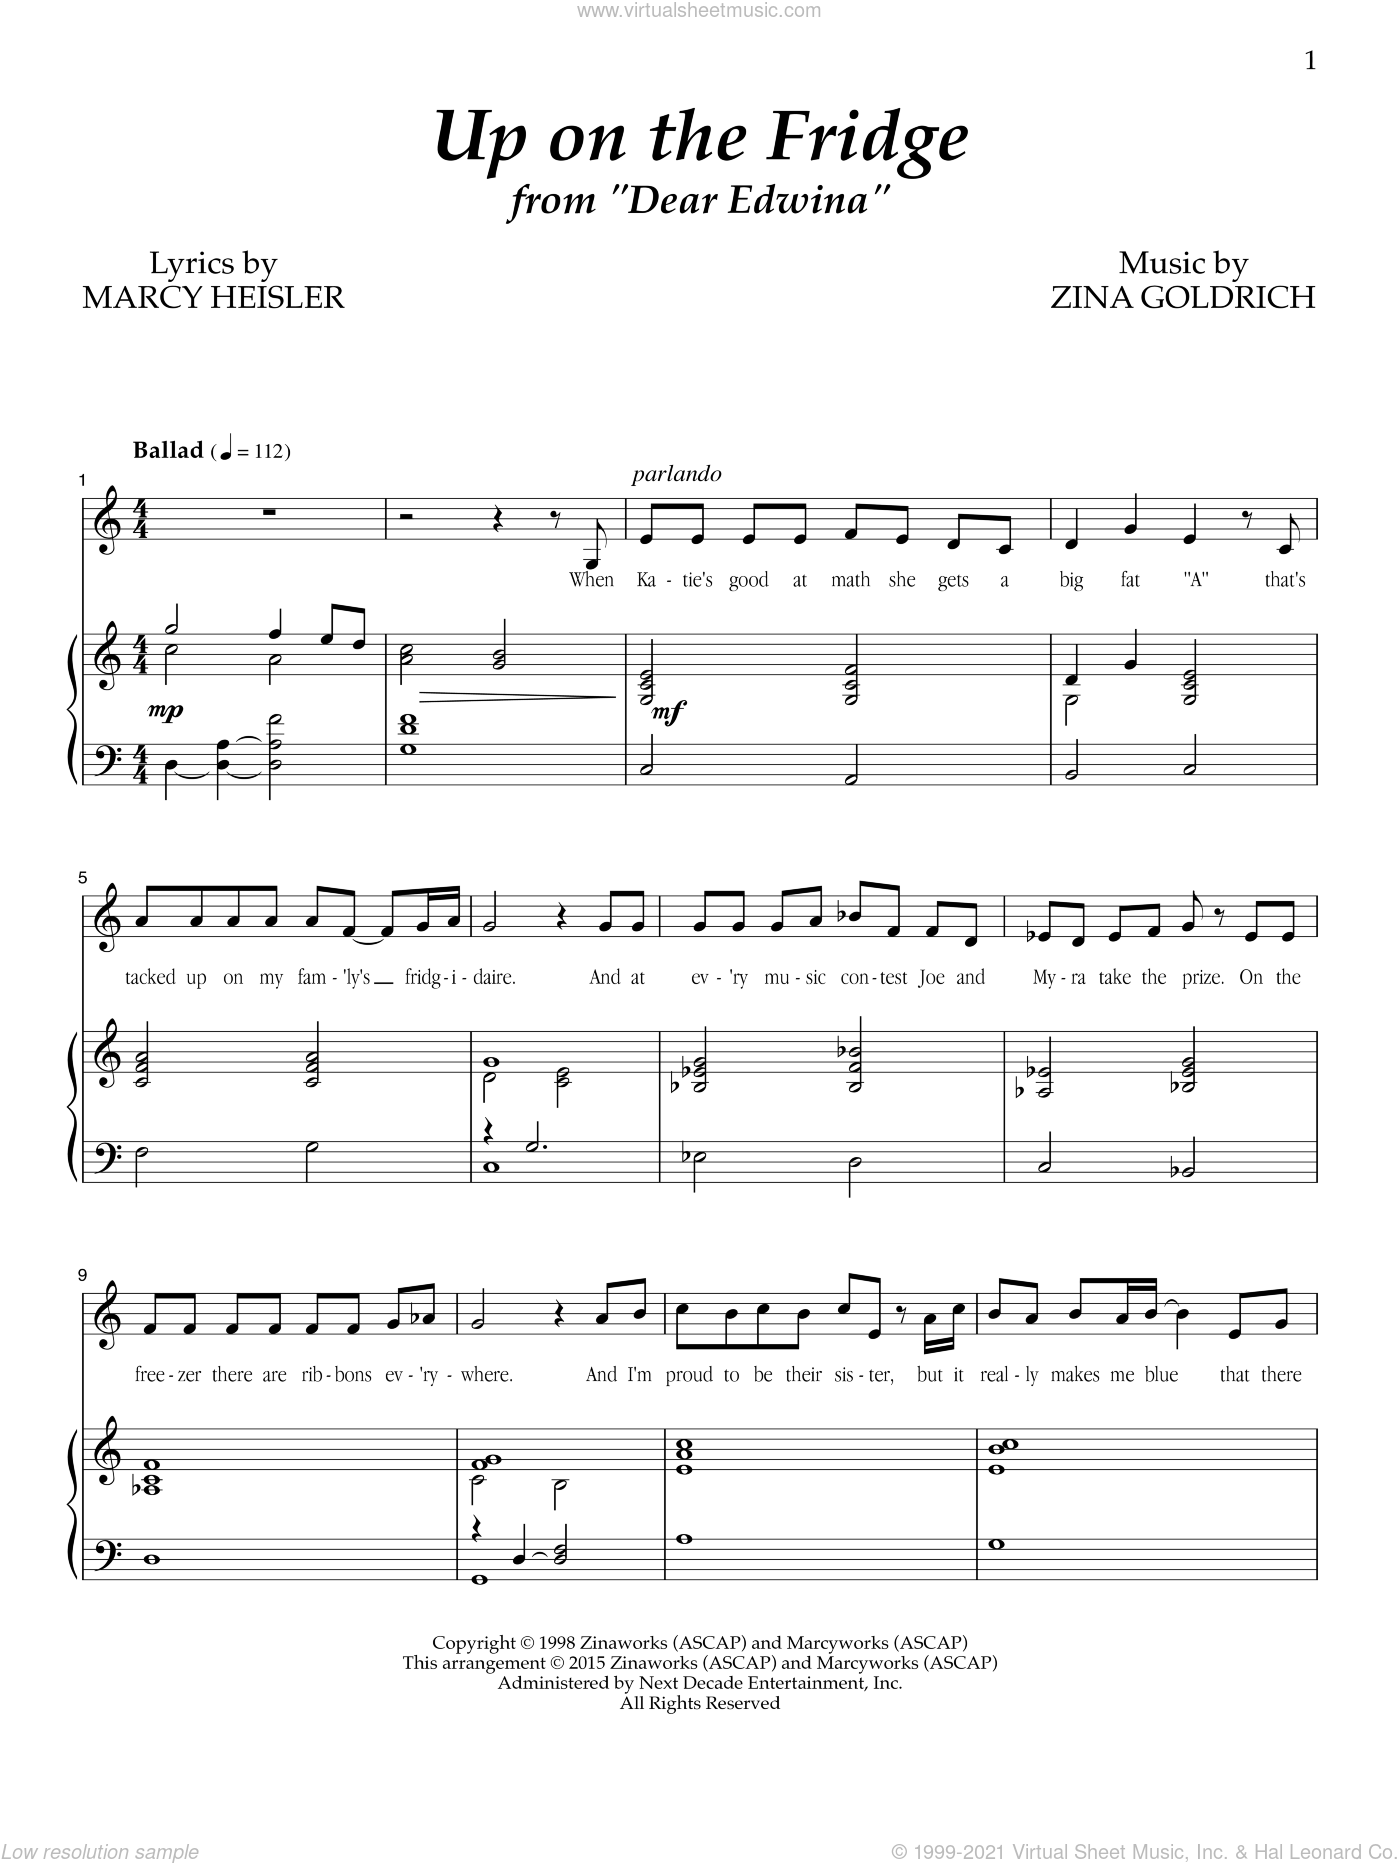 Taylor The Latte Boy Sheet Music Free Pdf